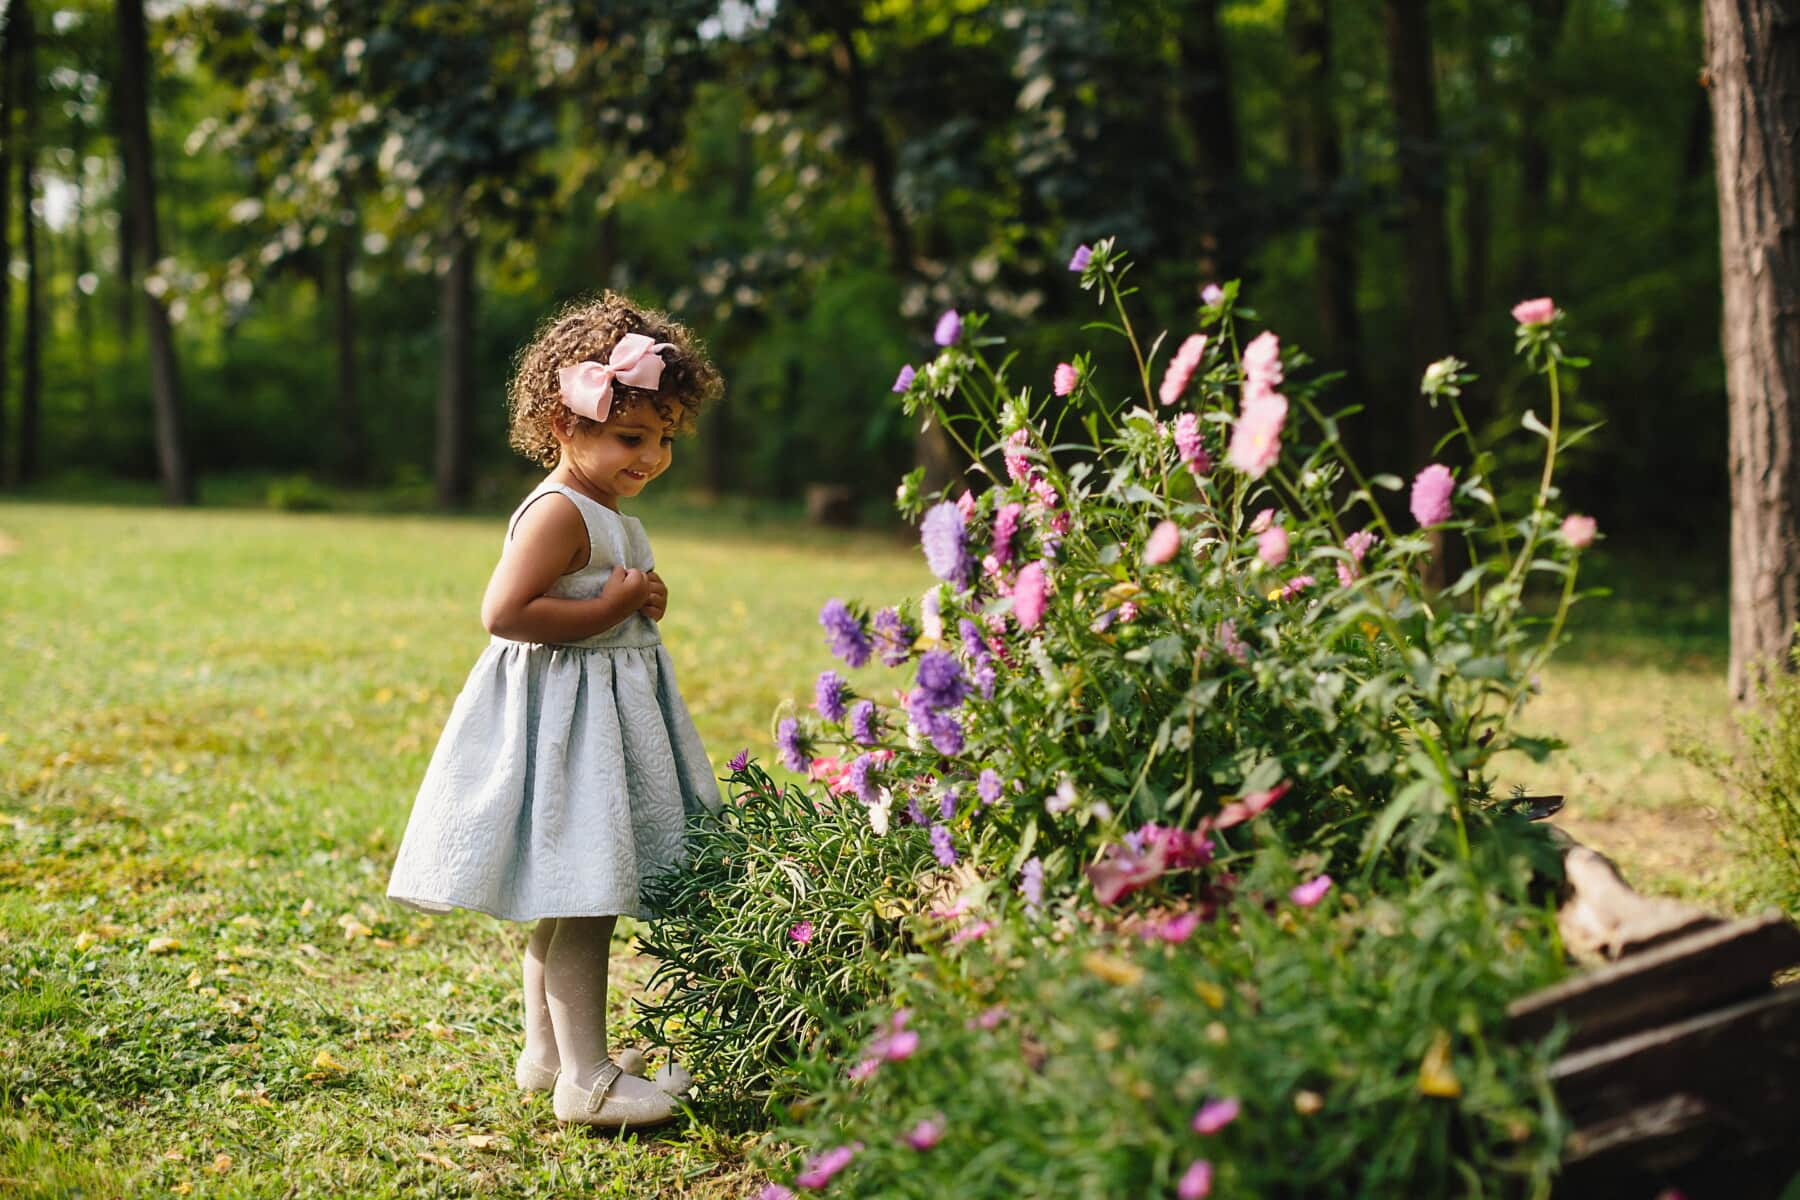 young, pretty girl, child, dress, fancy, smiling, enjoying, happiness, happy, grass